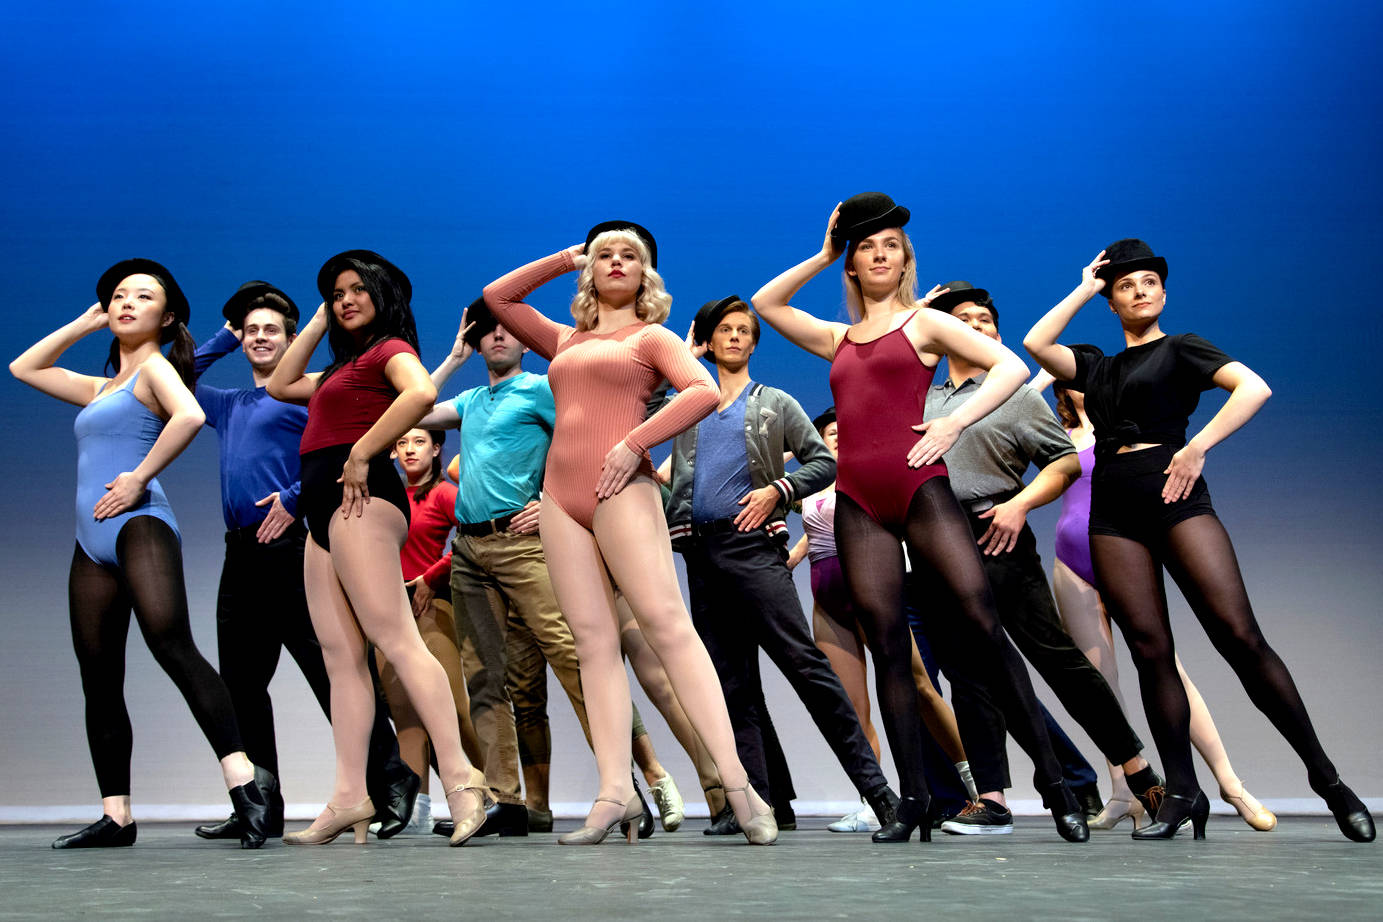 Capilano University promises a singular sensation with production of A Chorus Line